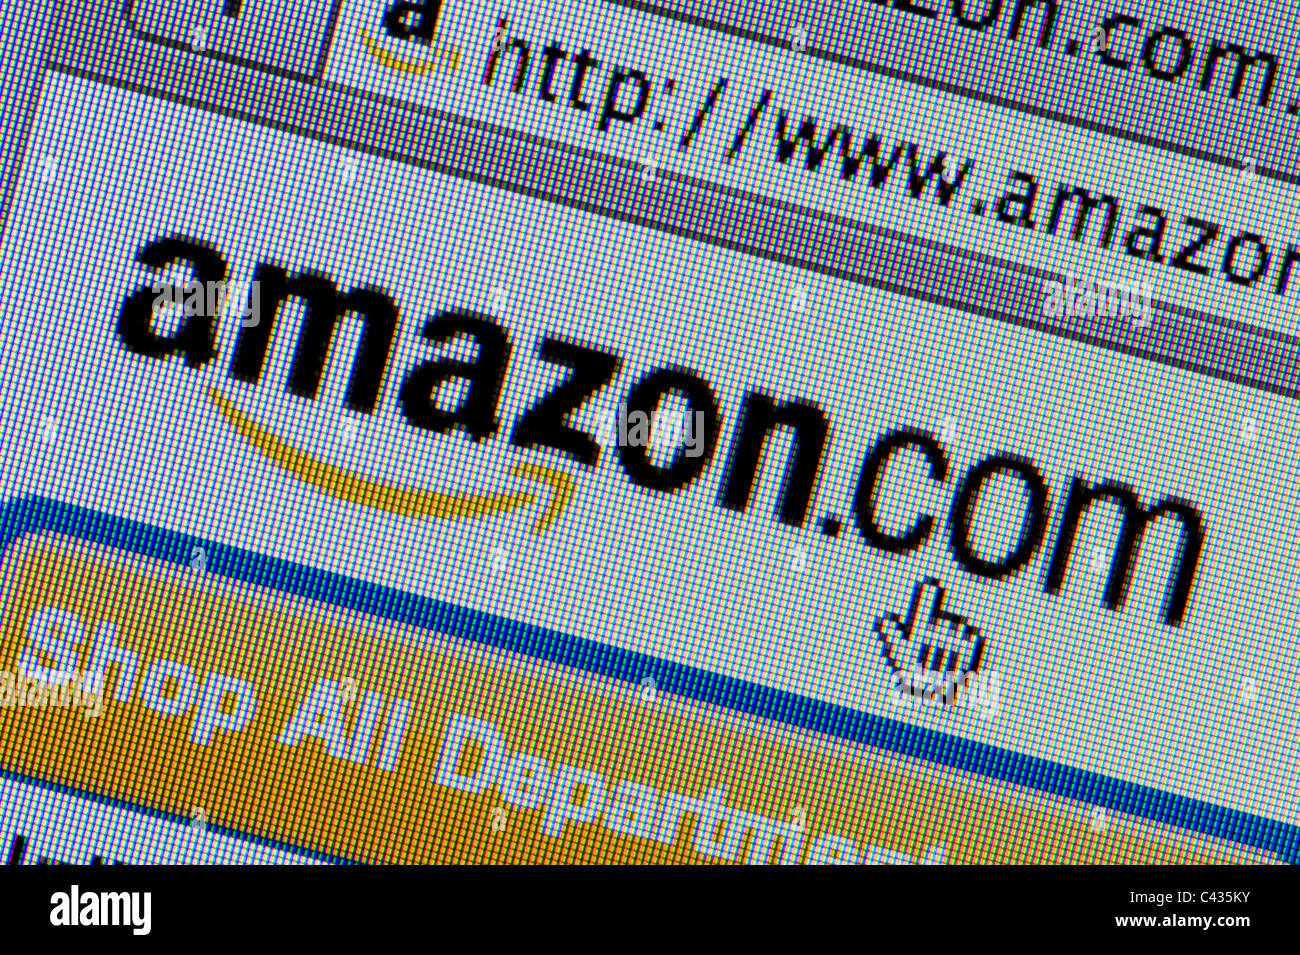 Close up of the Amazon logo as seen on its website. (Editorial use only: print, TV, e-book and editorial website). - Stock Image